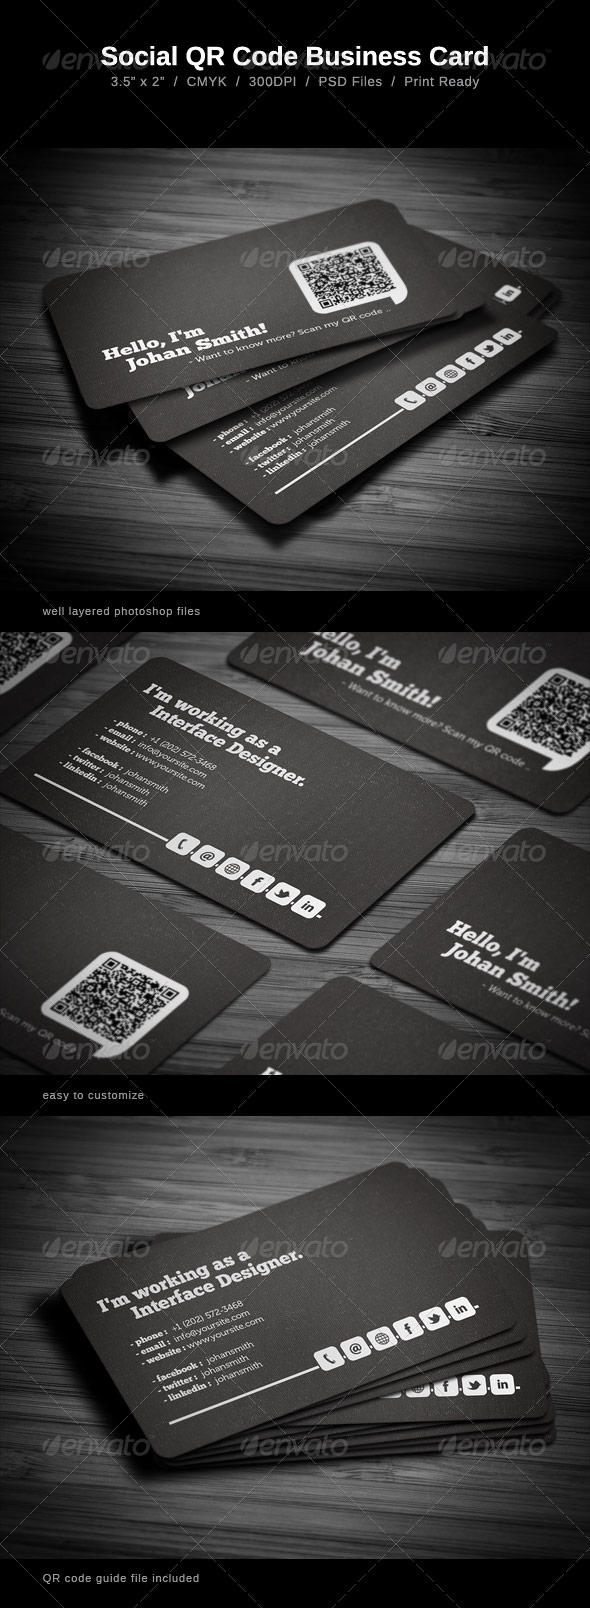 5 noteworthy back of business cards ideas business card qr back of card template accmission Gallery